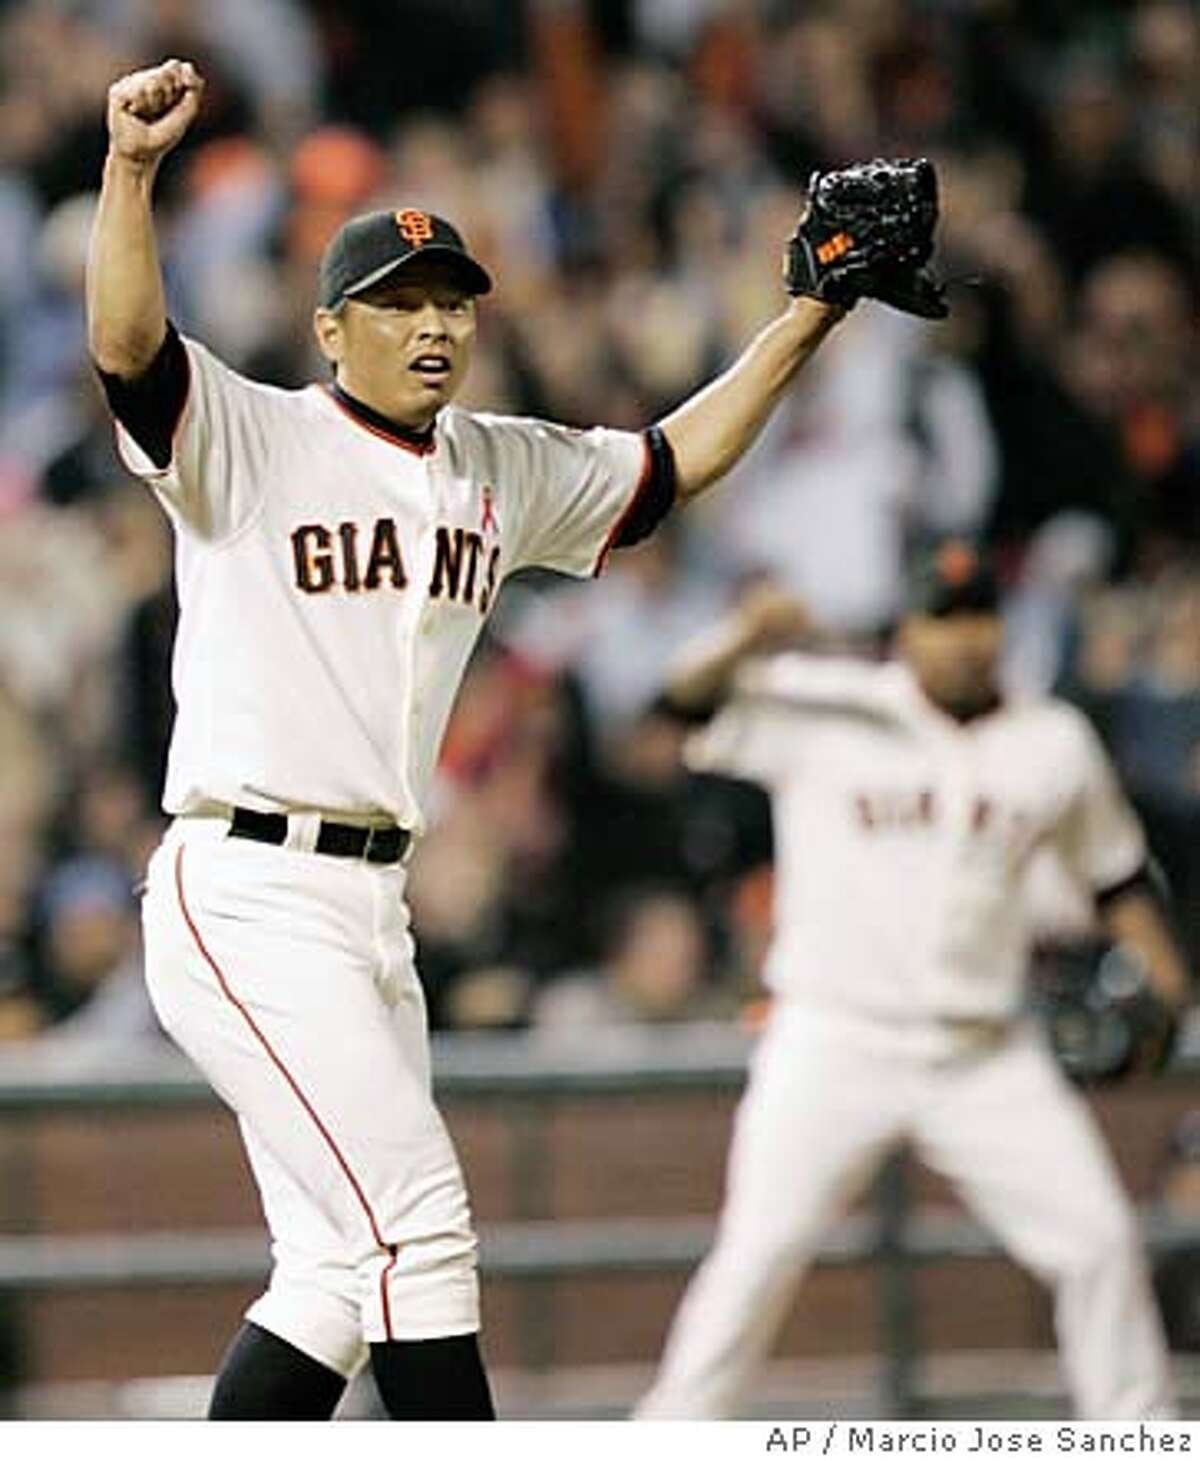 ** CORRECTS PLAY MADE TO A TRIPLE PLAY NOT A DOUBLE PLAY ** San Francisco Giants relief pitcher Keiichi Yabu, of Japan, celebrates after getting San Diego Padres' Kevin Kouzmanoff to ground out for an inning-ending triple play in the eighth inning of a baseball game in San Francisco, Friday, May 30, 2008.(AP Photo/Marcio Jose Sanchez)